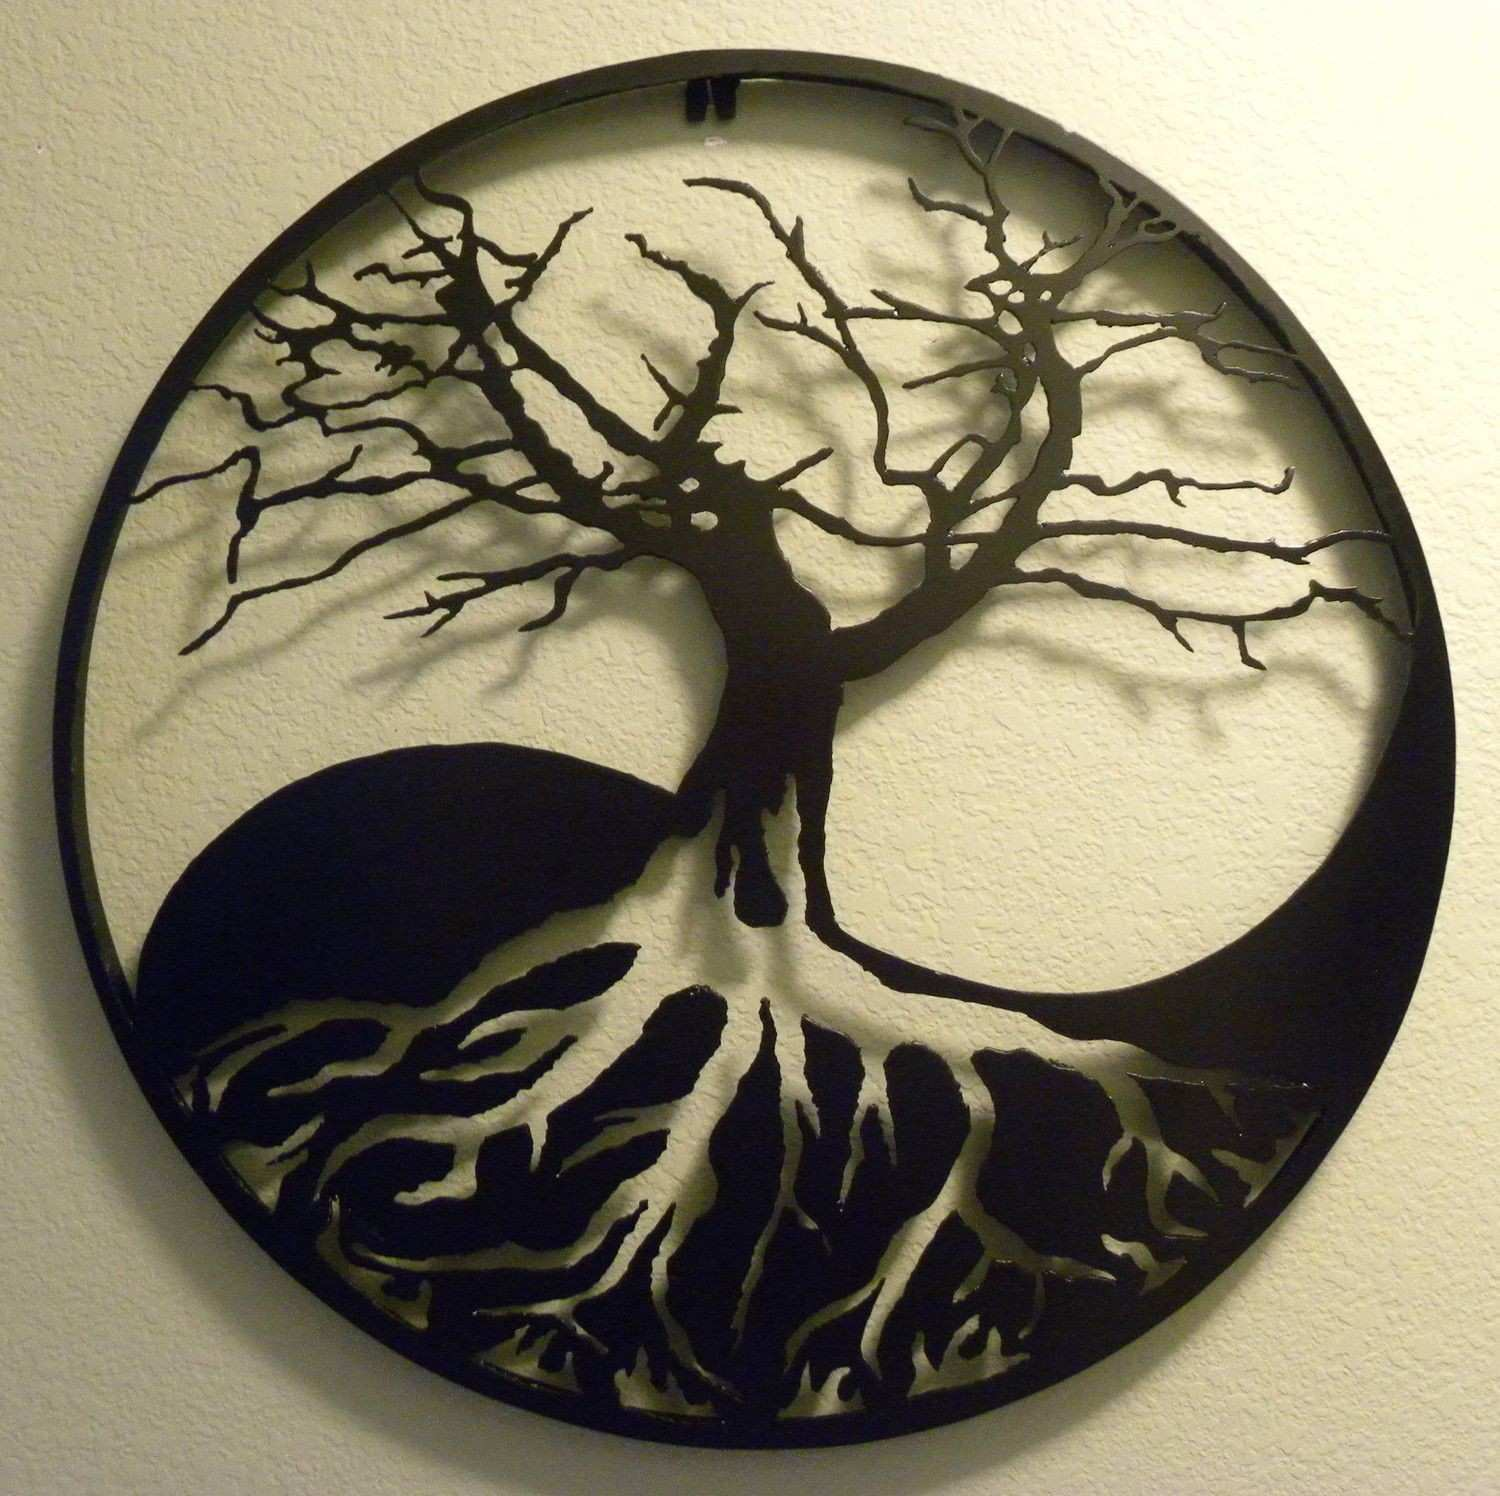 Yin Yang Tree of Life Metal Wall Art $225 00 via Etsy